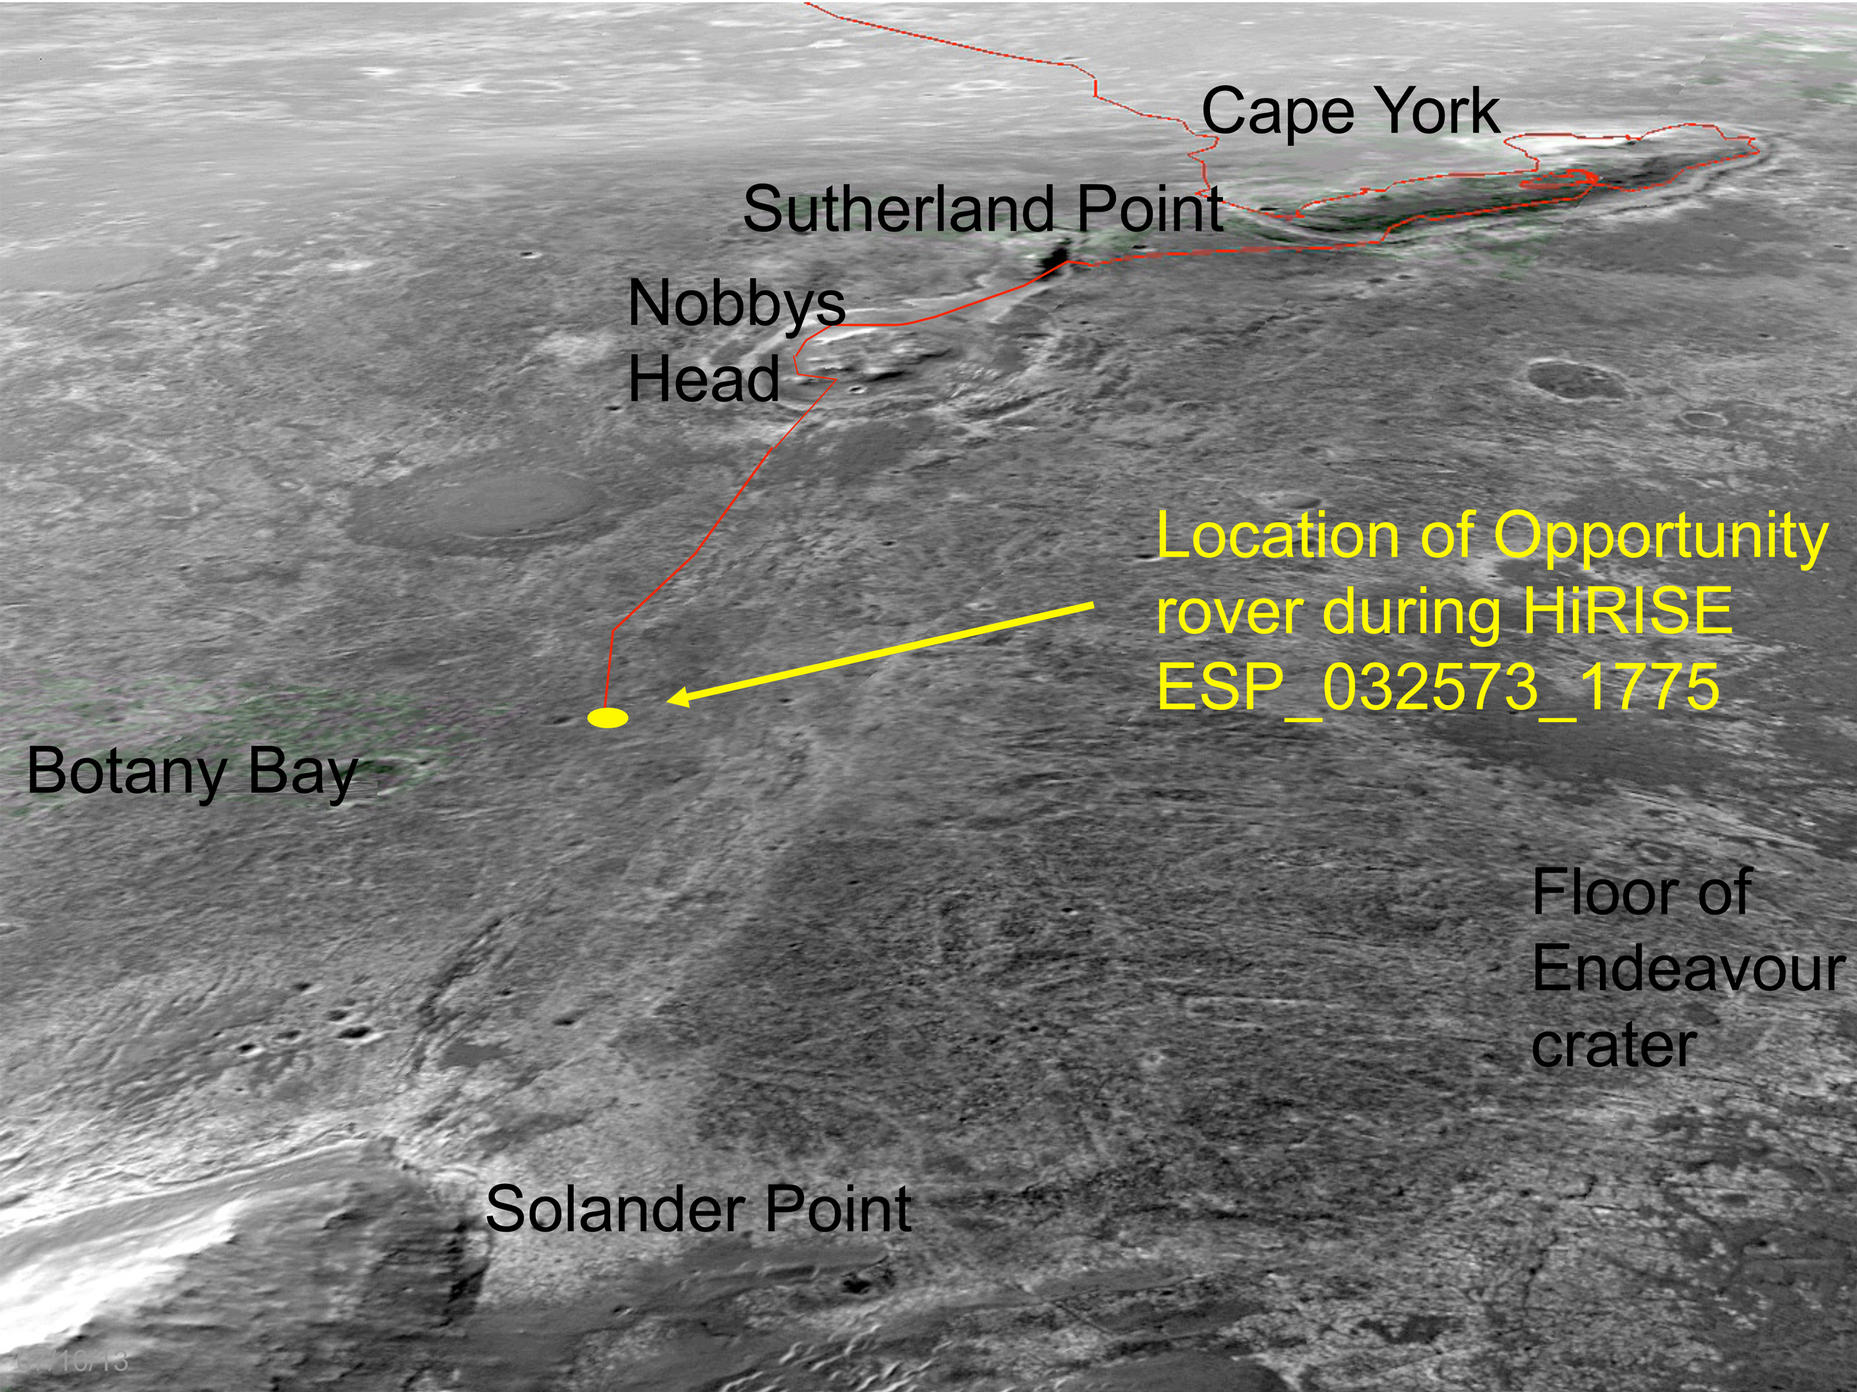 An oblique, northward-looking view based on stereo orbital imaging, shows the location of Opportunity on its journey from Cape York to Solander Point when HiRISE took the new color image.